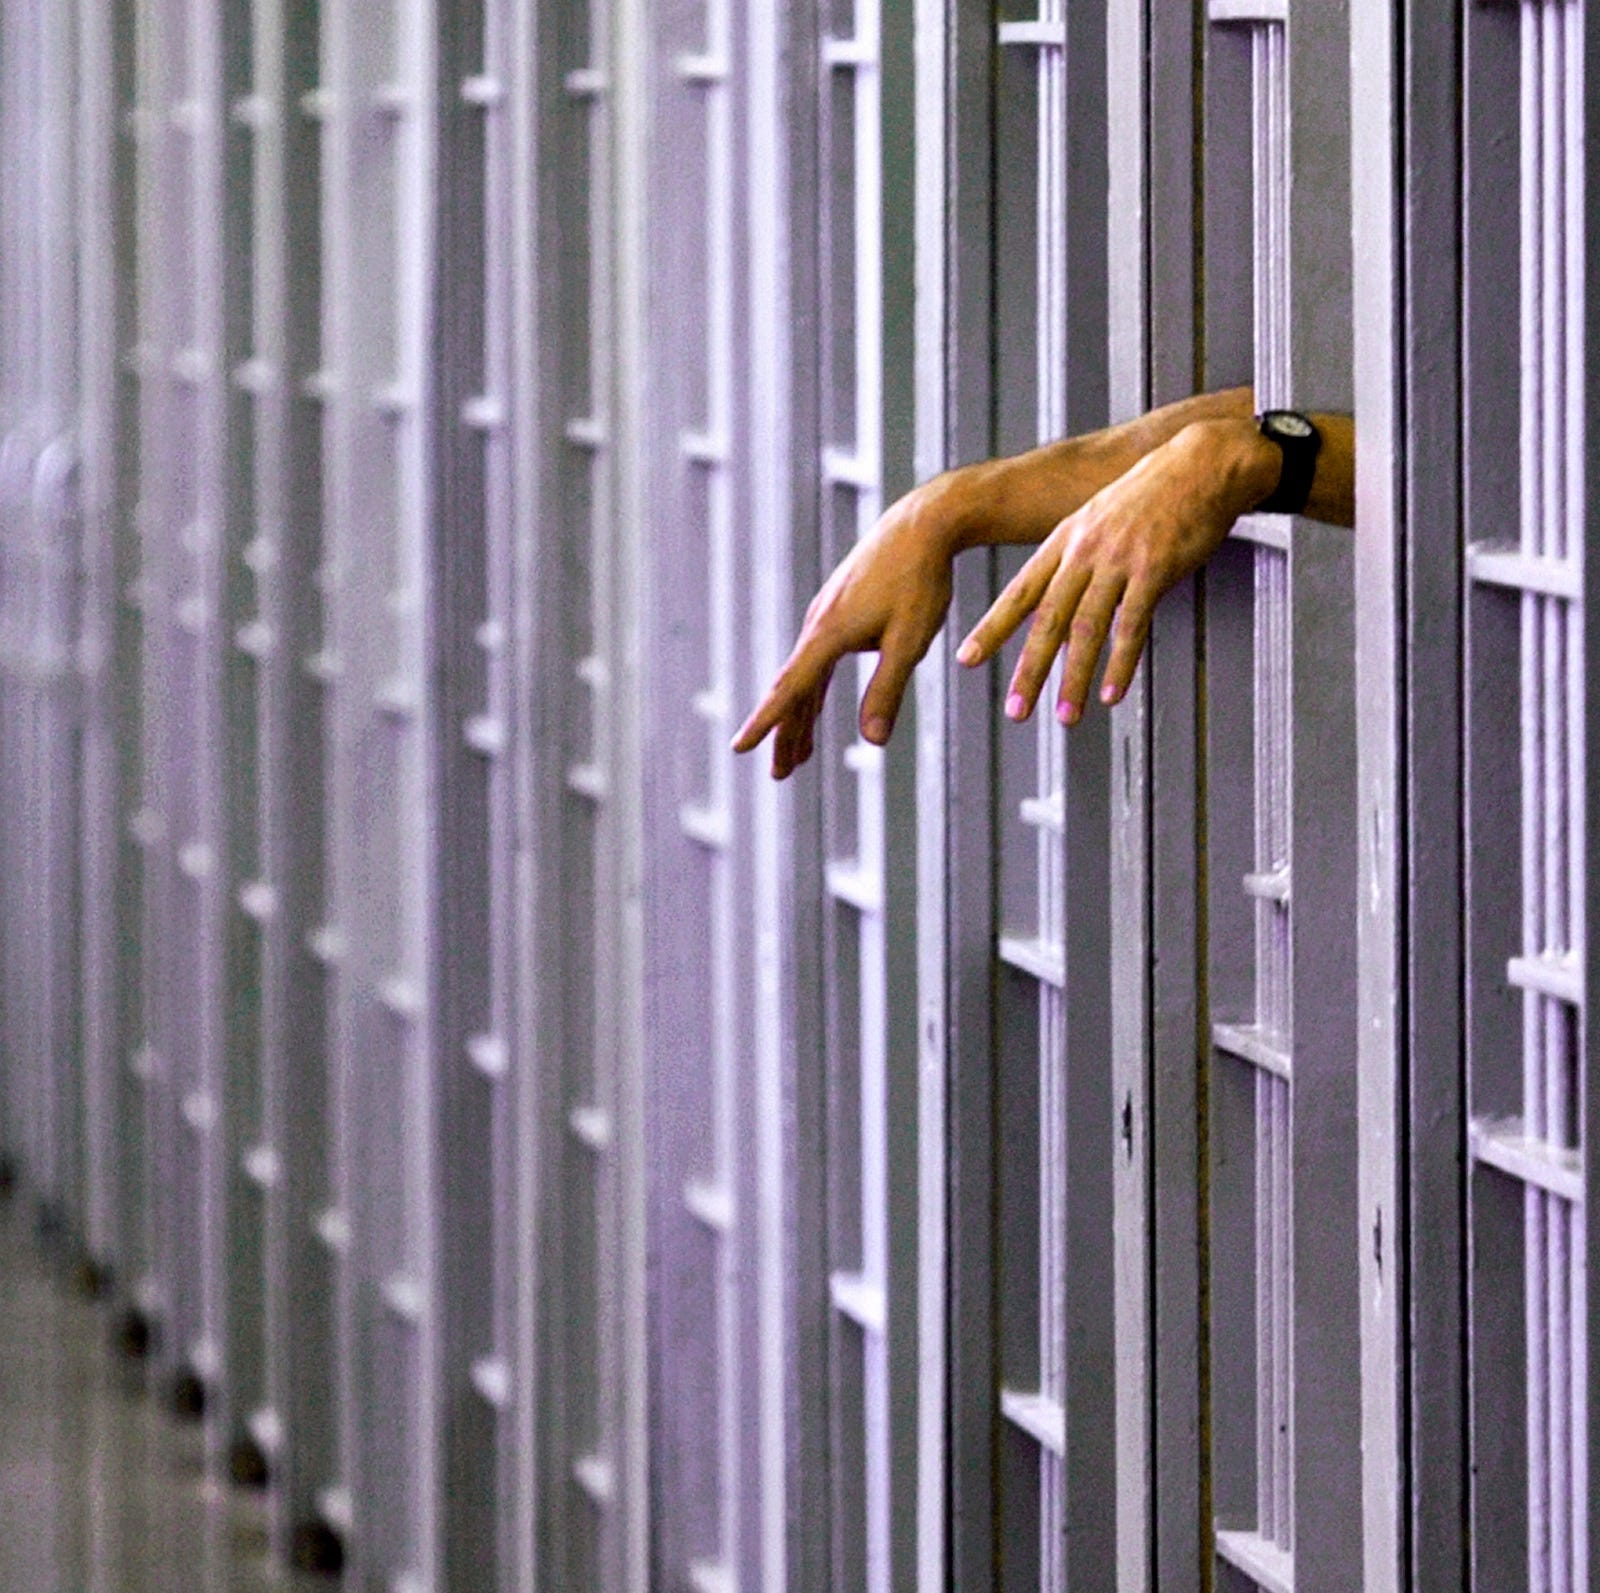 Opinion: Invest in higher education for prisoners